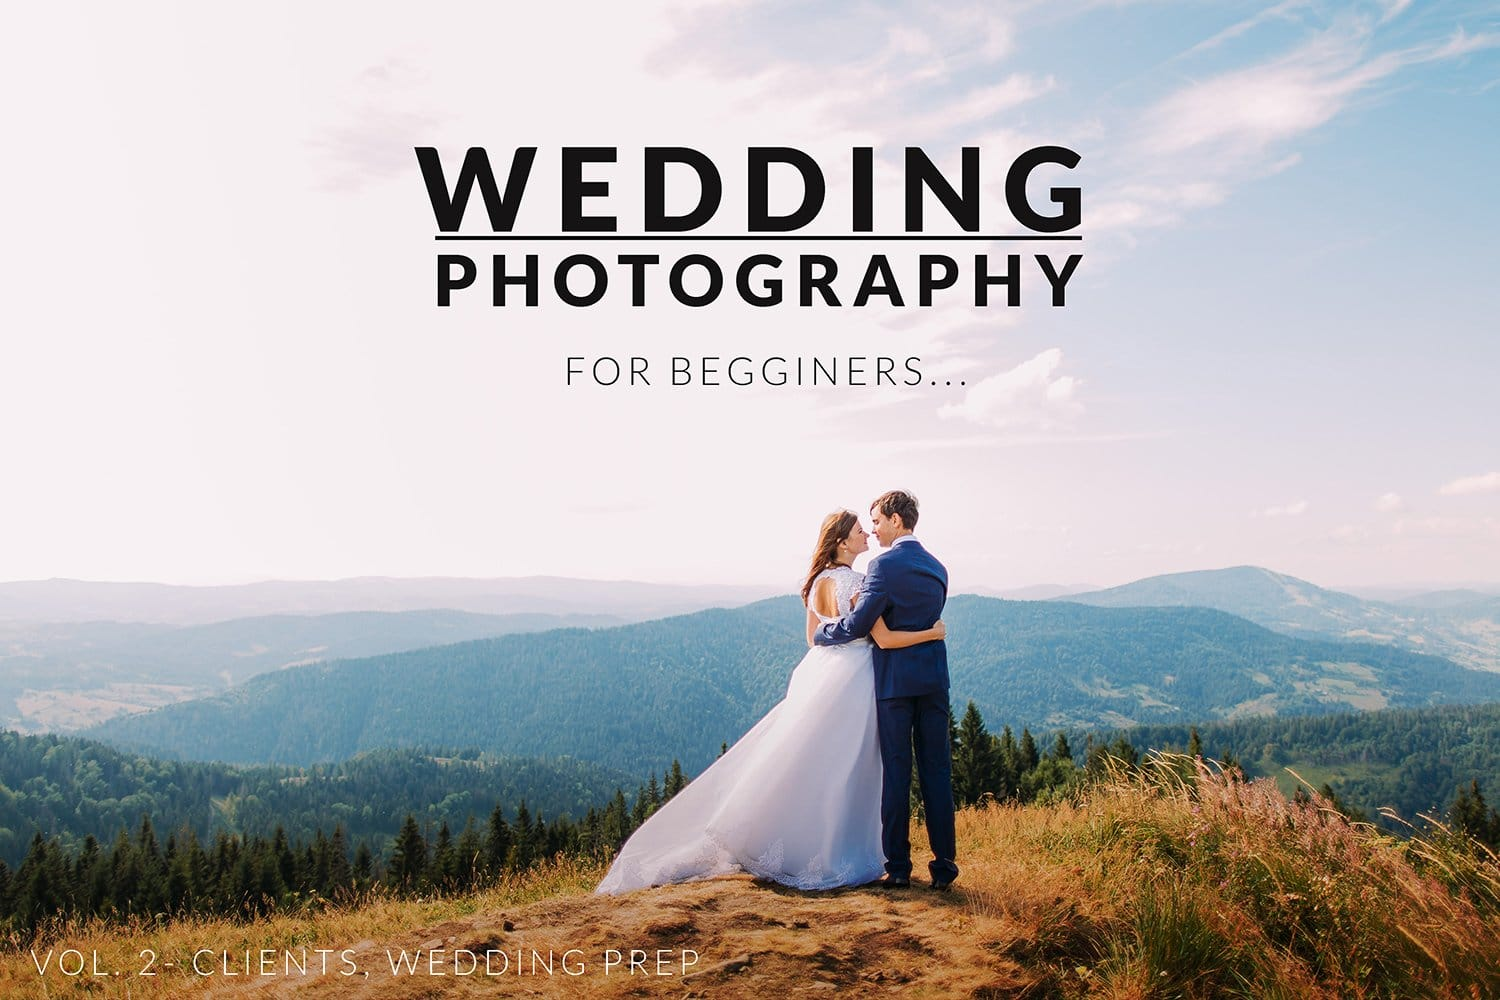 Wedding Photography Tips Beginners: Wedding Photography For Beginners – Vol. 2